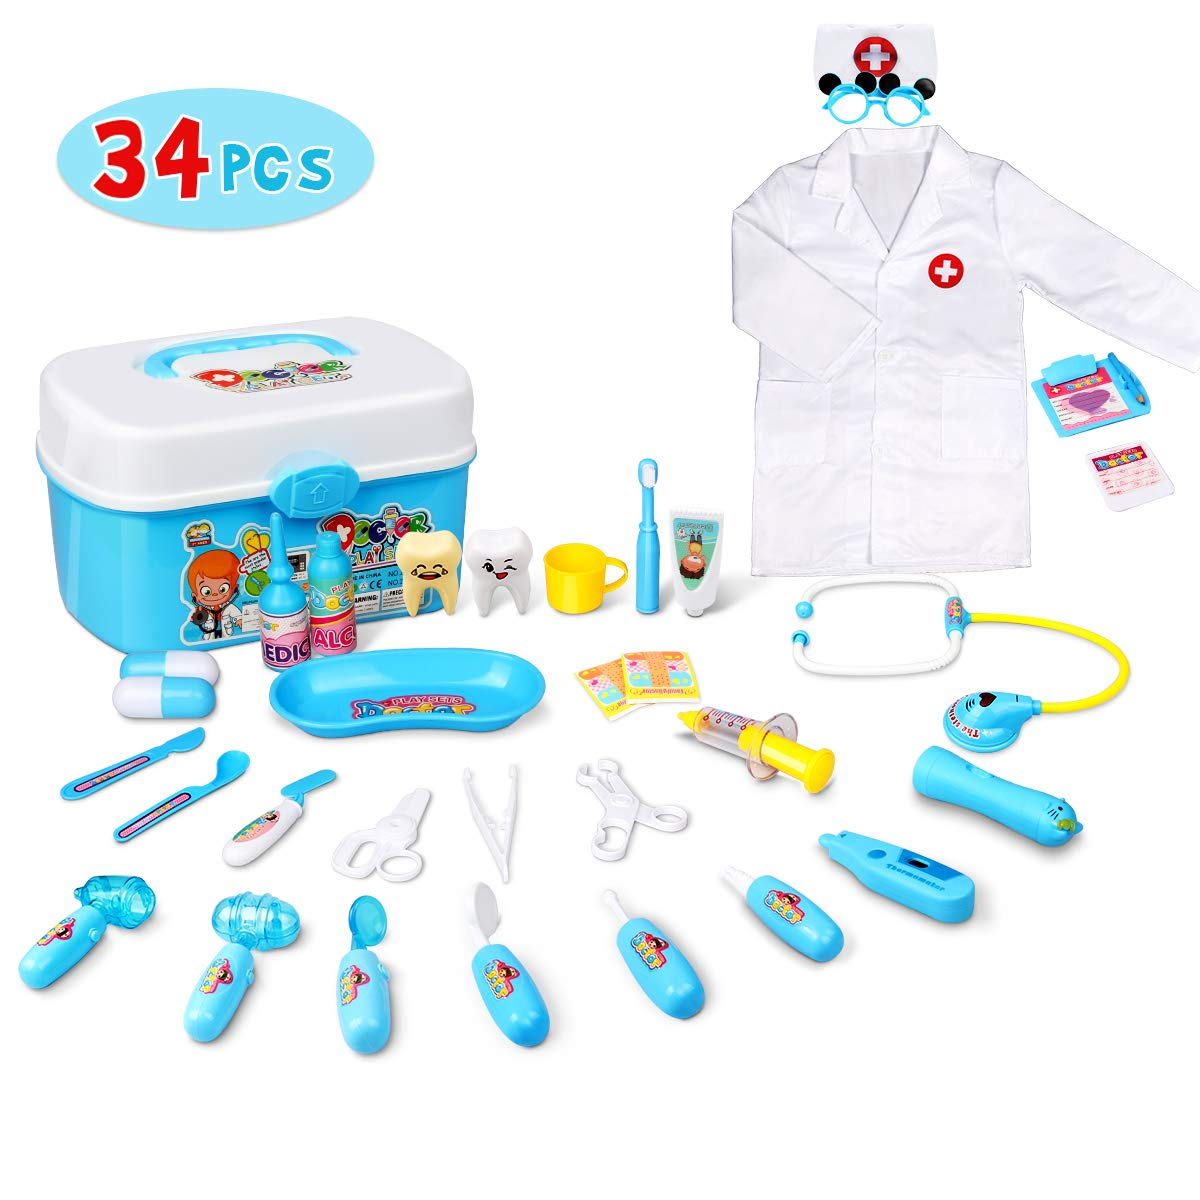 Lydaz Doctor Kit for Kids, 34 Pcs Pretend Play Kids Medical Kit Toys with Roleplay Costume for Boys Girls Toddlers Age 3 Years and Up by Lydaz